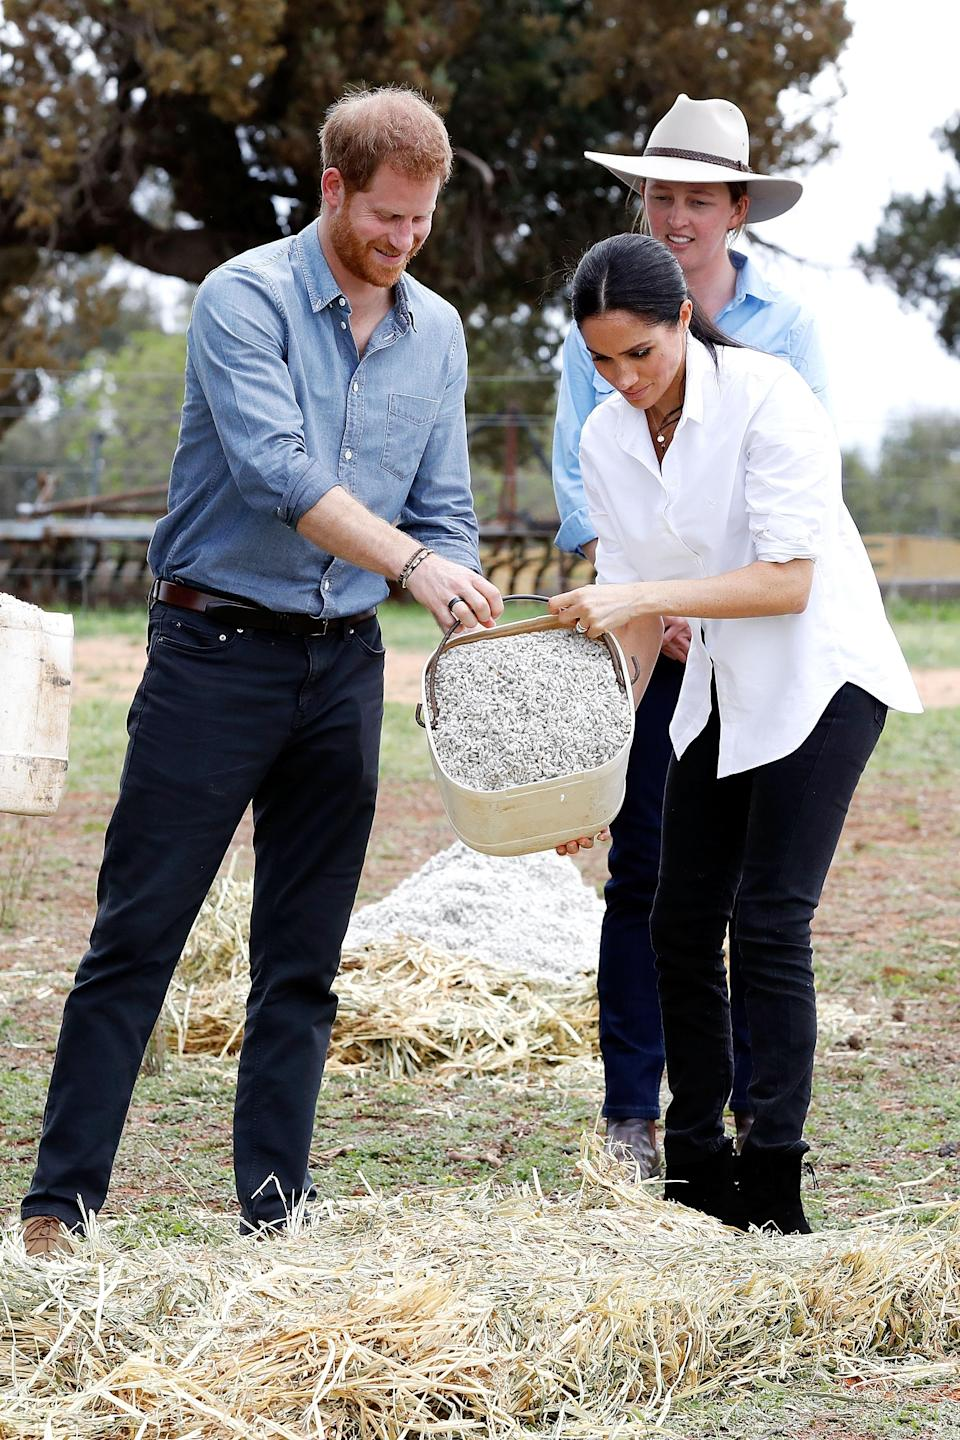 """<p>The 37-year-old had her hair tied back in a sleek ponytail, a style we don't normally see from the royal. Meghan's go-to hair looks are the duchess waves and her signature messy bun, but we did see her wear a ponytail for <a rel=""""nofollow"""" href=""""https://au.lifestyle.yahoo.com/royals-step-prince-louis-christening-204129042.html"""" data-ylk=""""slk:Prince Louis' christening;outcm:mb_qualified_link;_E:mb_qualified_link;ct:story;"""" class=""""link rapid-noclick-resp yahoo-link"""">Prince Louis' christening</a> back in July when she would <a rel=""""nofollow"""" href=""""https://au.lifestyle.yahoo.com/missy-higgins-accidentally-reveals-meghan-markle-pregnancy-detail-214842834.html"""" data-ylk=""""slk:already have been expecting.;outcm:mb_qualified_link;_E:mb_qualified_link;ct:story;"""" class=""""link rapid-noclick-resp yahoo-link"""">already have been expecting.</a><br>Photo: Getty </p>"""